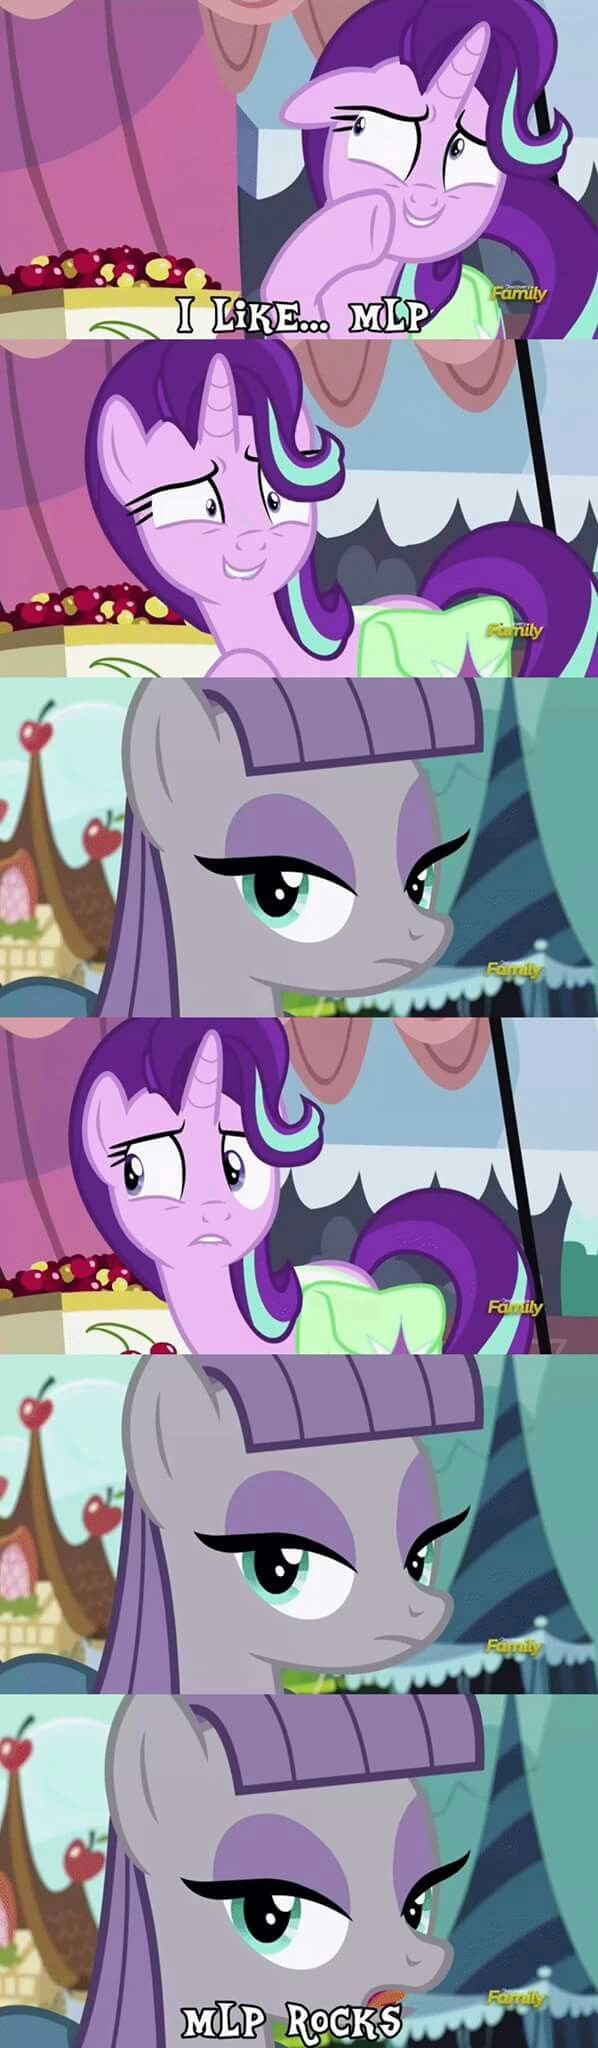 To those that are scared to confess mlp rocks and to fine someone that loves them too